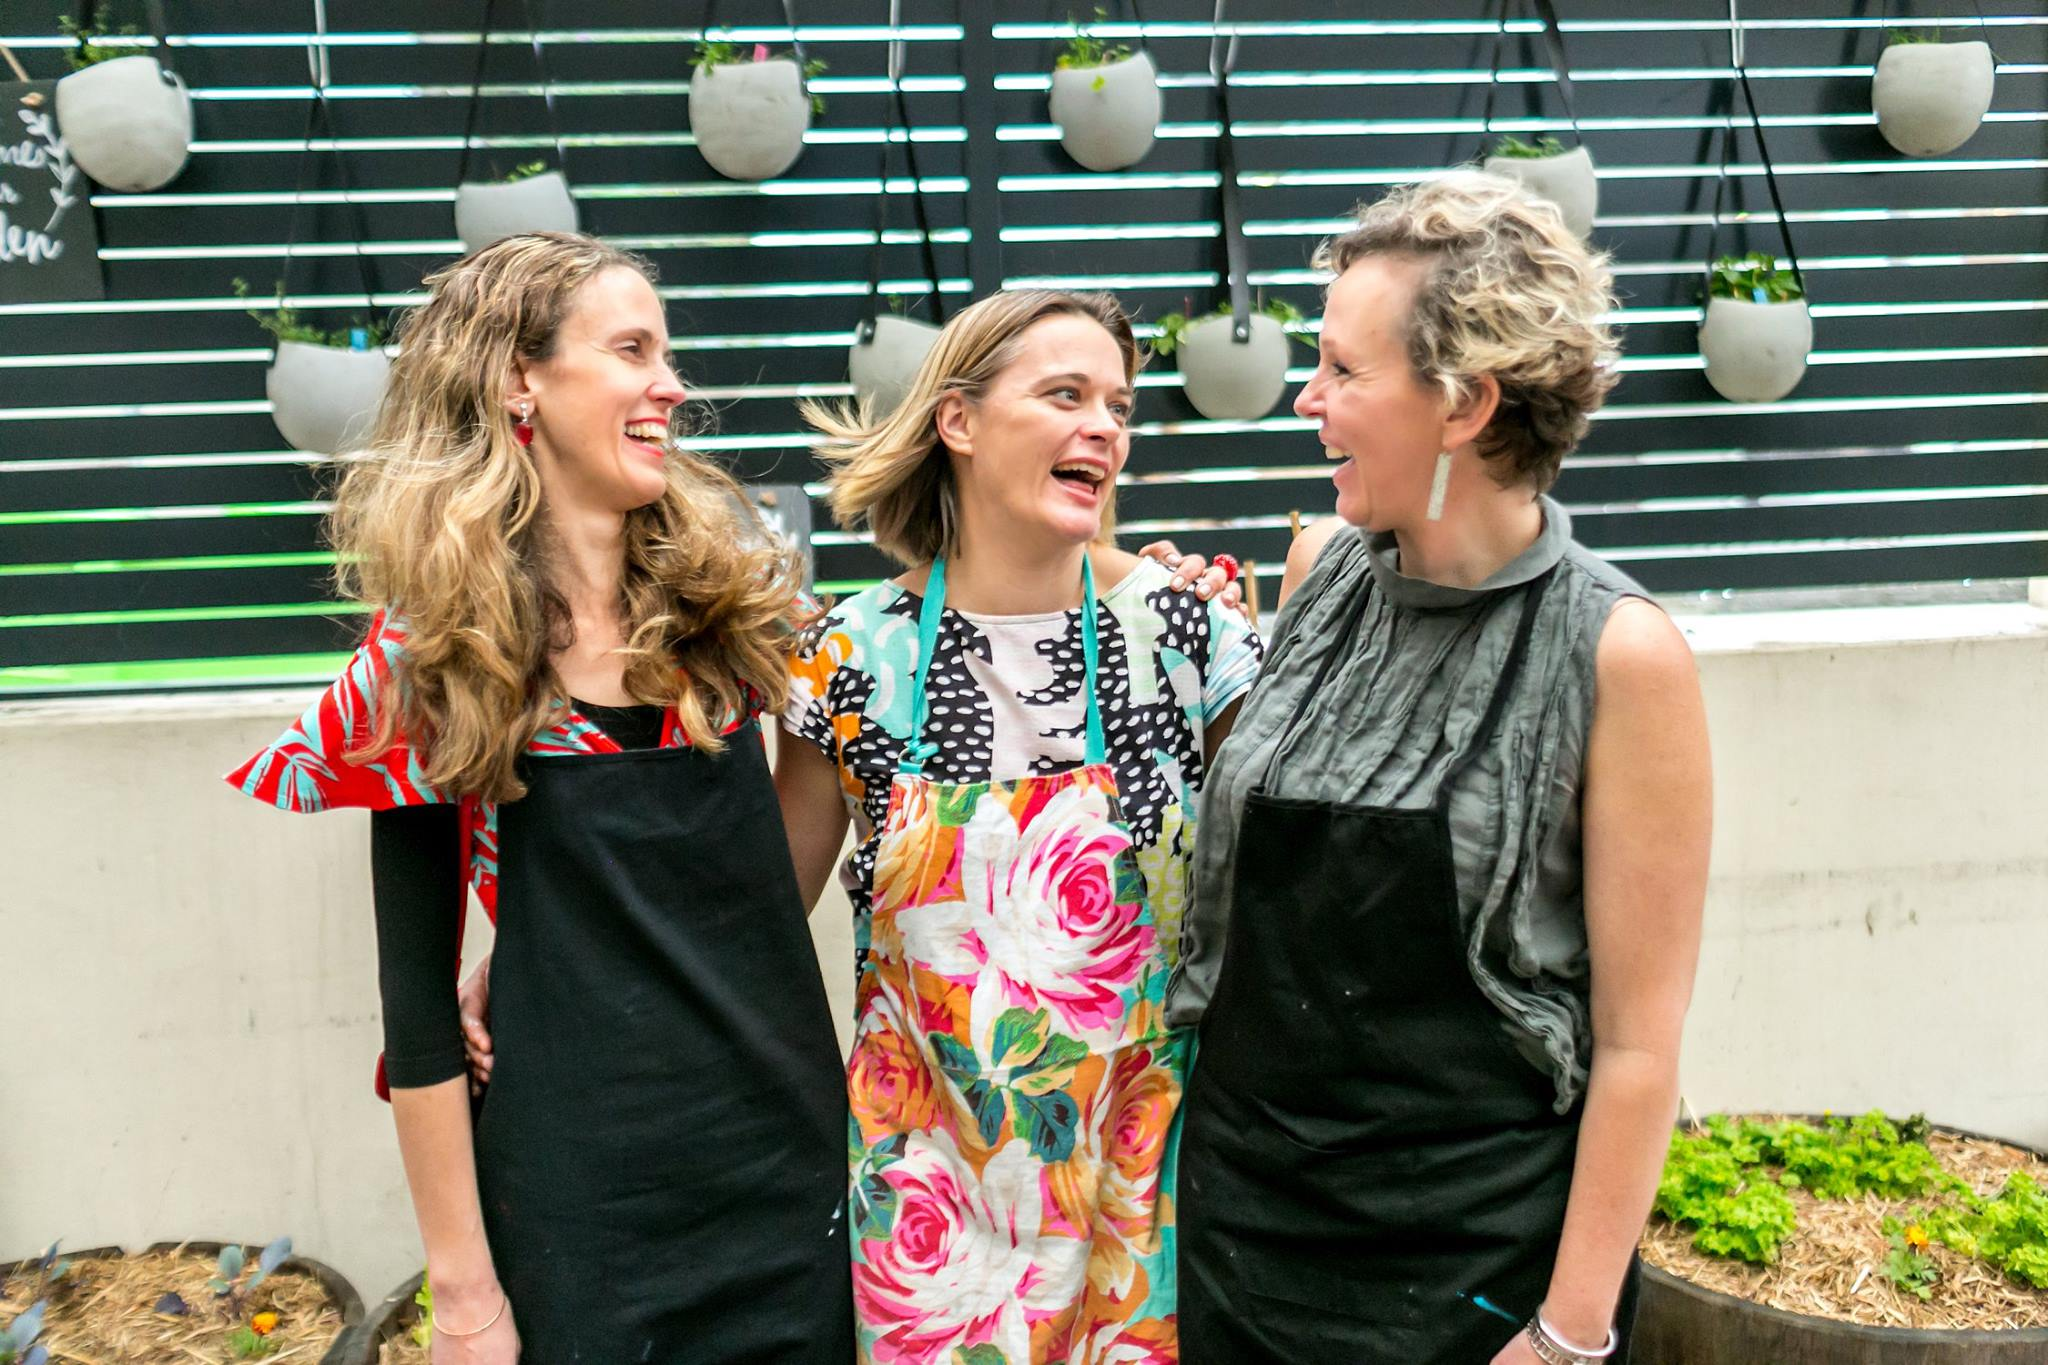 Another BIG thank you to these amazing Mama Creatives legends for their incredible vision and generously offering their time and talent facilitating the creative workshops; painter Yaeli Ohana, Jade Oakley and Louise Trevitt.